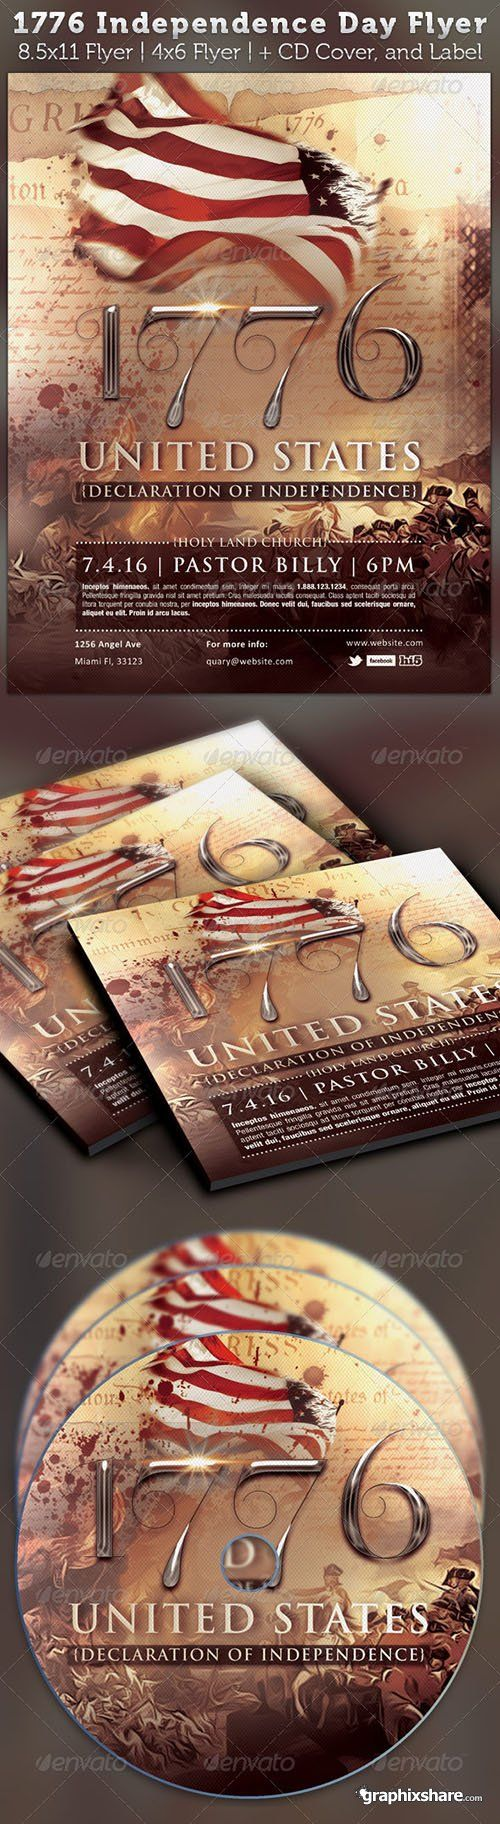 26 best Independence Day images on Pinterest | Diwali, Event flyers ...